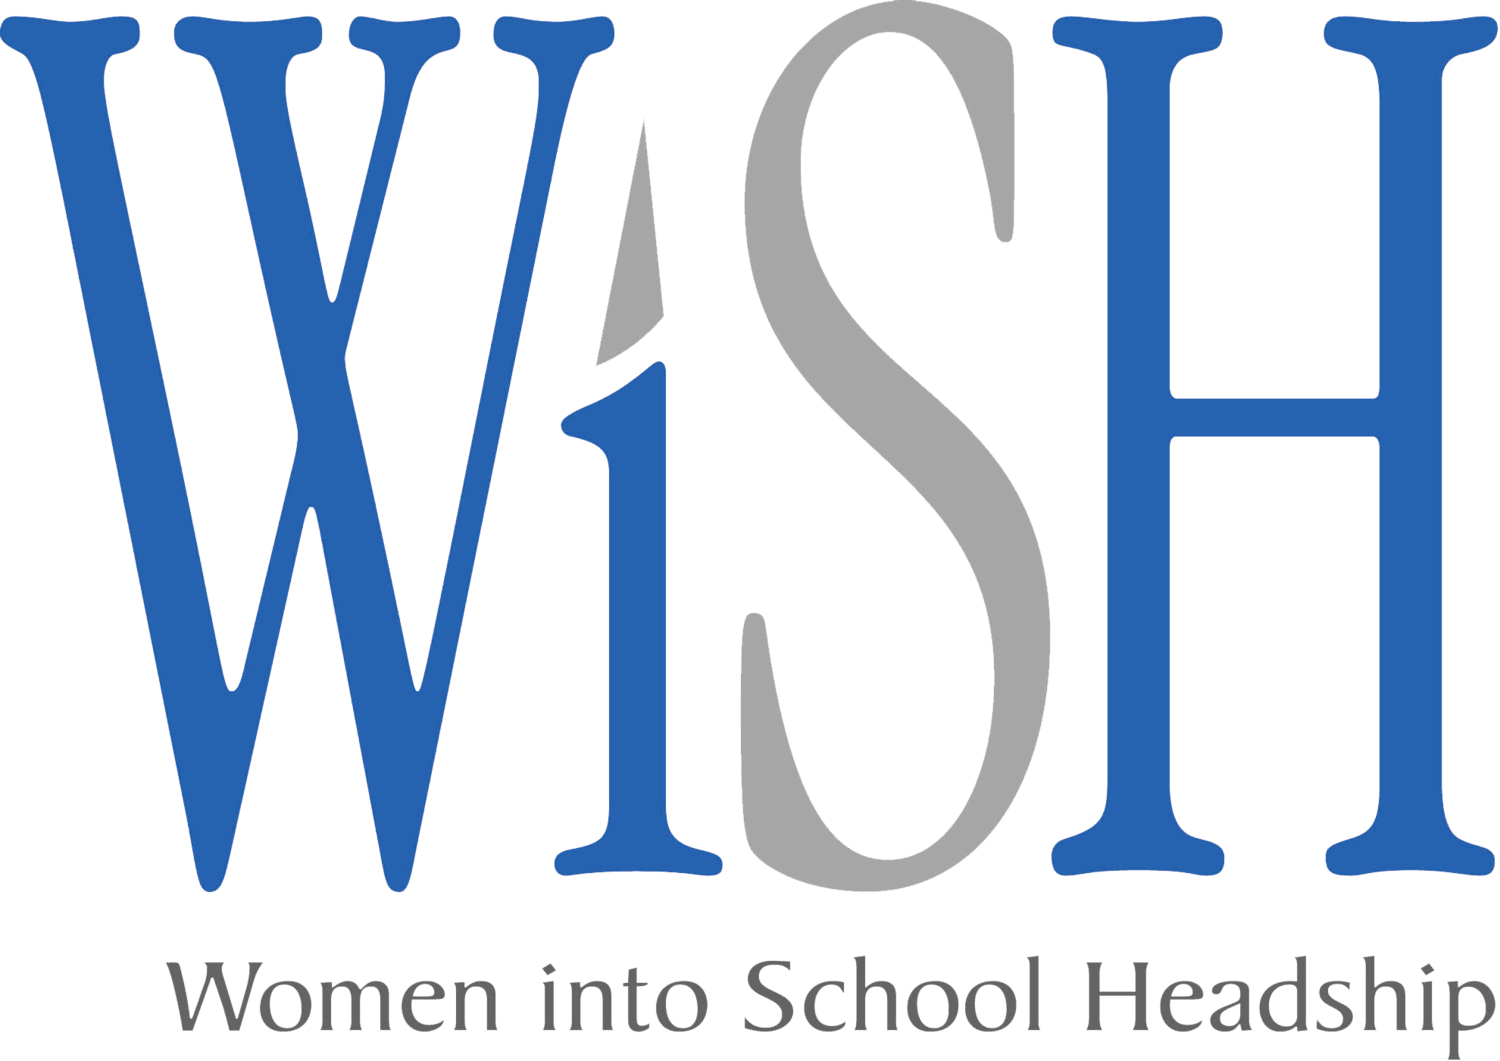 Women into School Headship